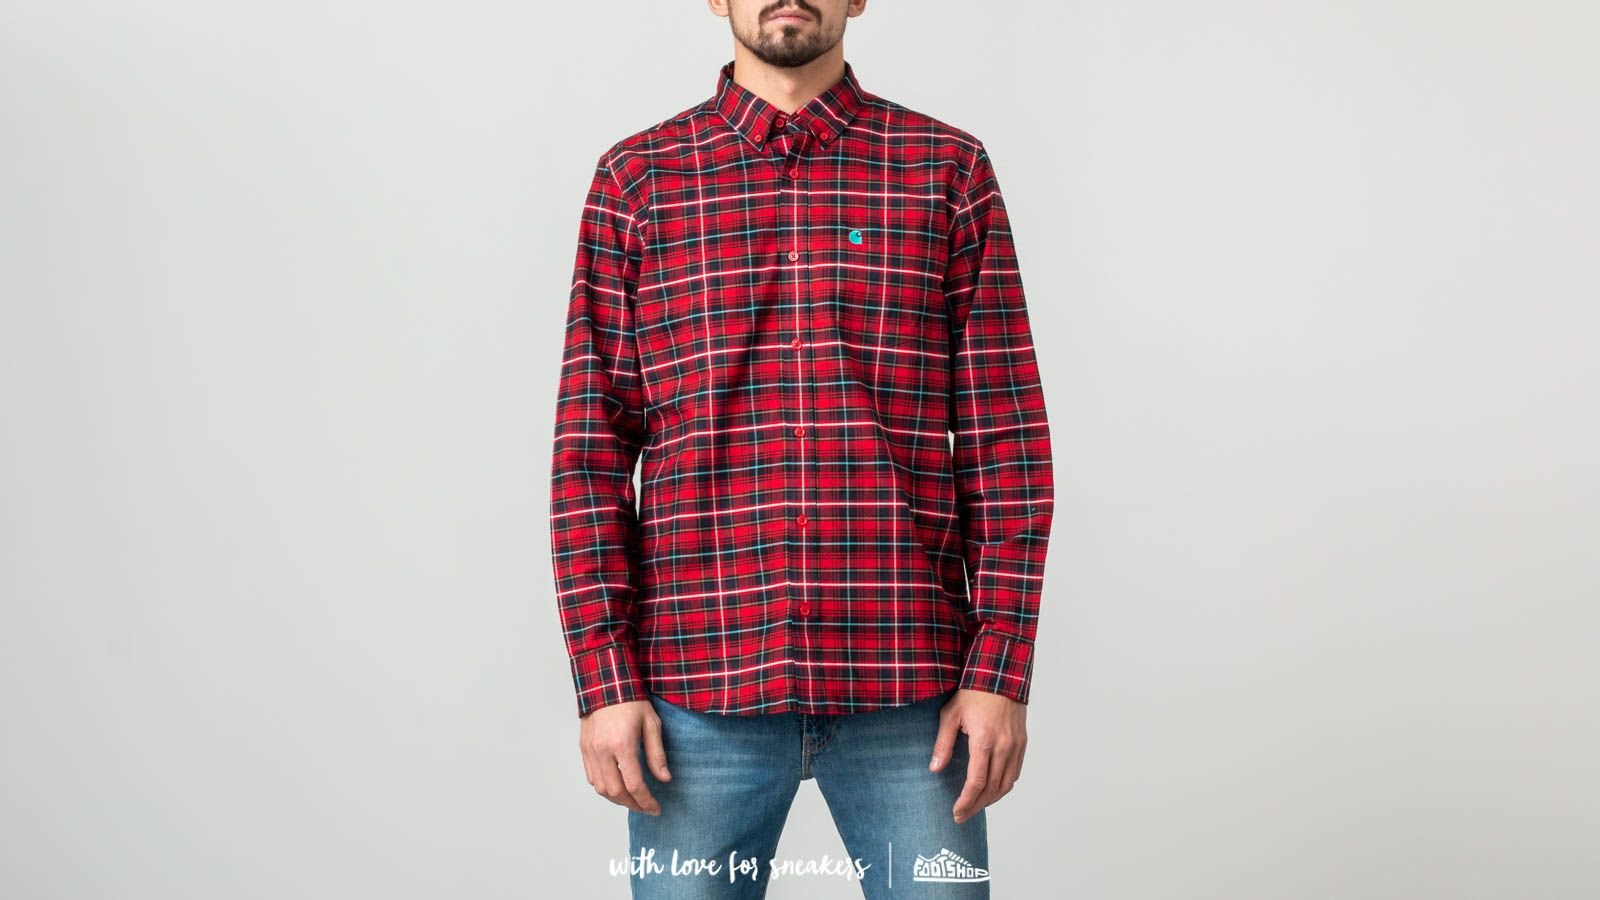 Trička a košile Carhartt WIP Longsleeve Patton Shirt Patton Check/ Blast Red